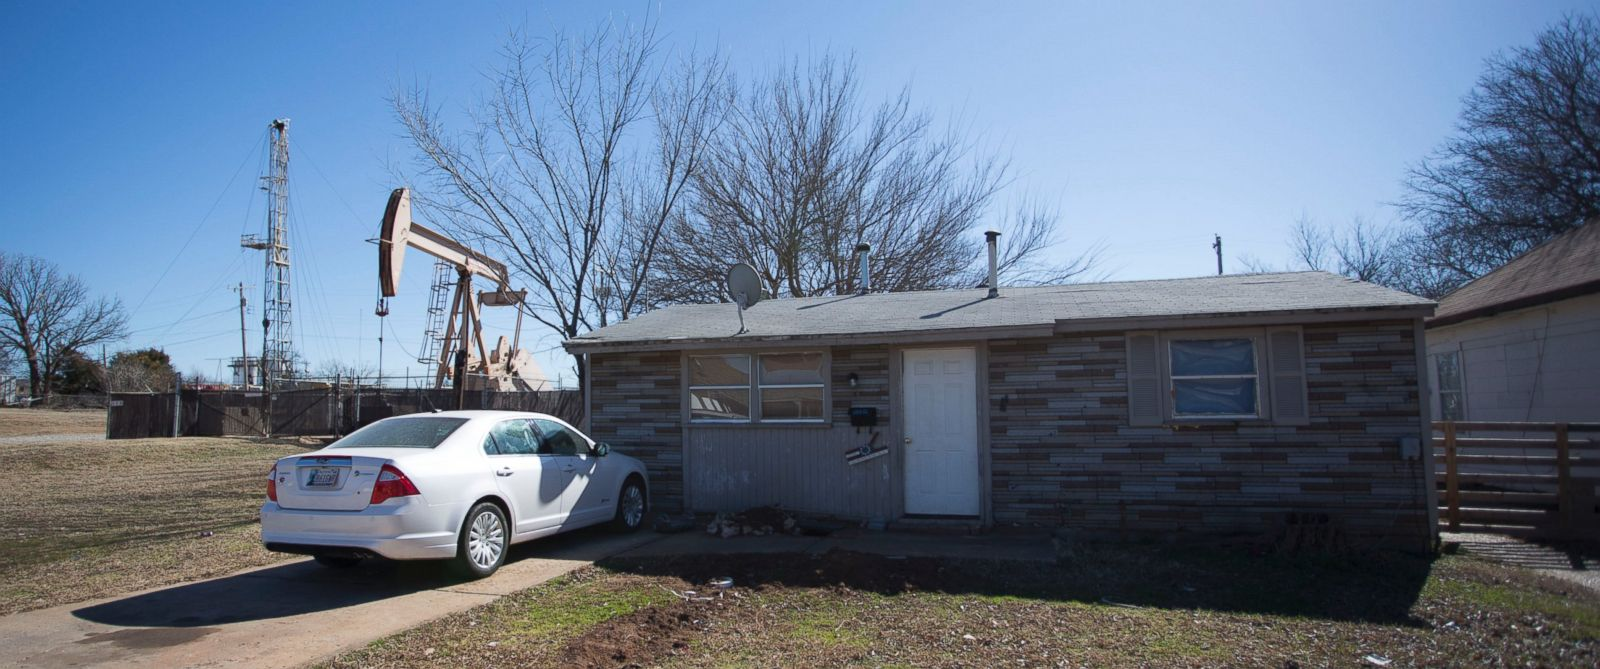 PHOTO: A new fracking rig and a pumping rig stand beside a house on February 10, 2016 in an Oklahoma City, Oklahoma neighborhood.